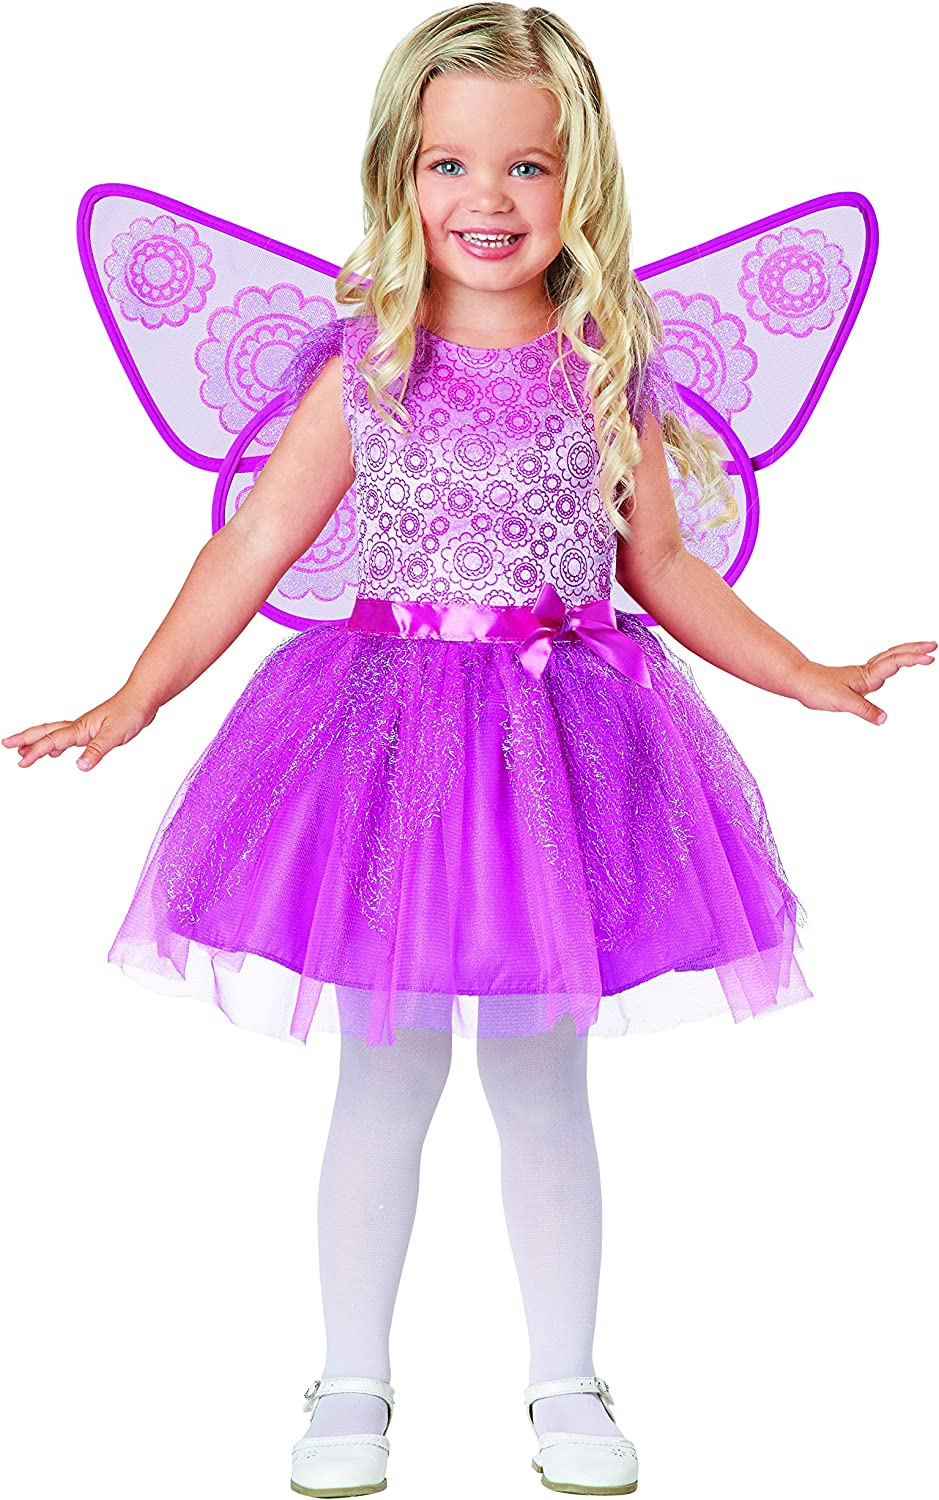 FAIRY BEAUTIFUL DRESS UP//HALLOWEEN COSTUME~BRAND NEW~SIZE WOMEN/'S SMALL 2-4